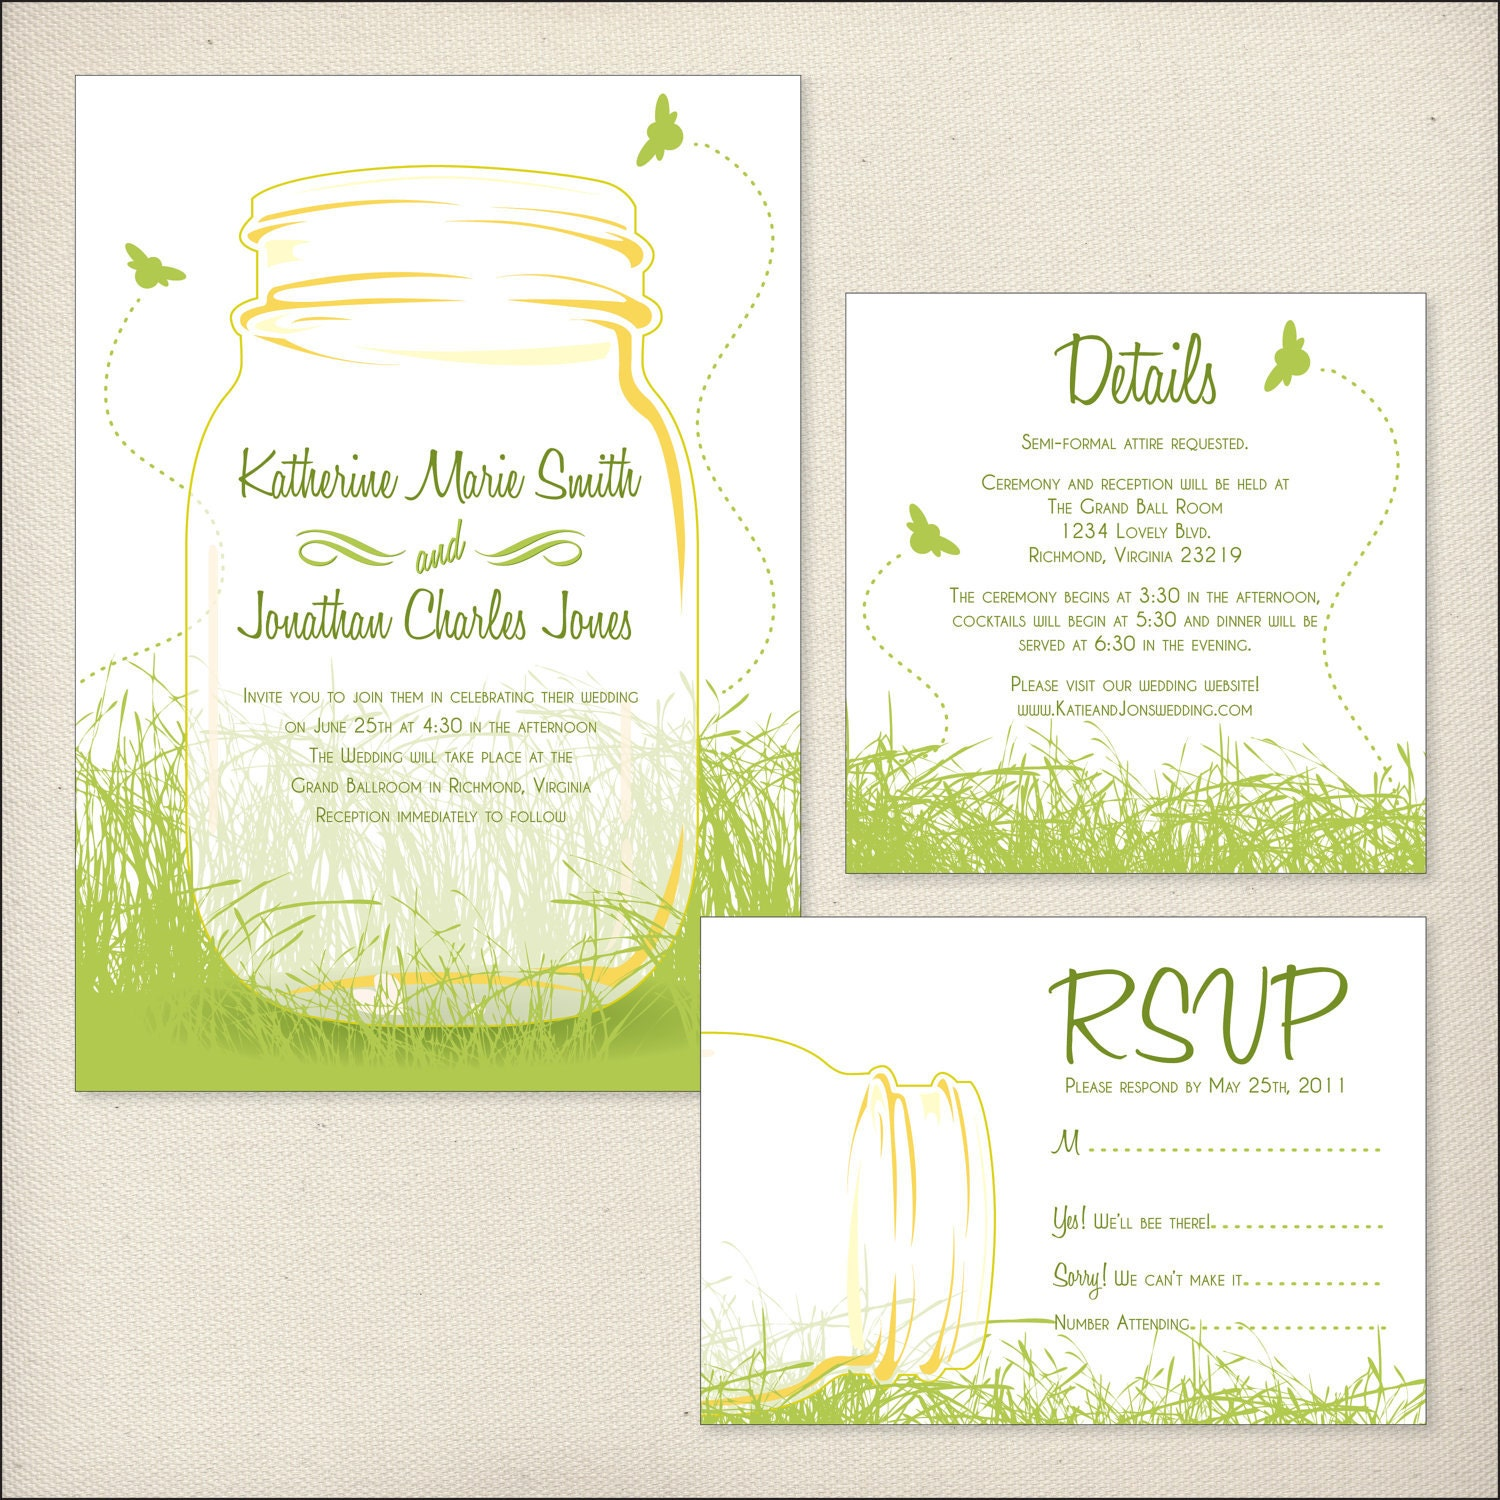 Mason Jars Wedding Invitation Package | OnePaperHeart – Stationary & Invitations